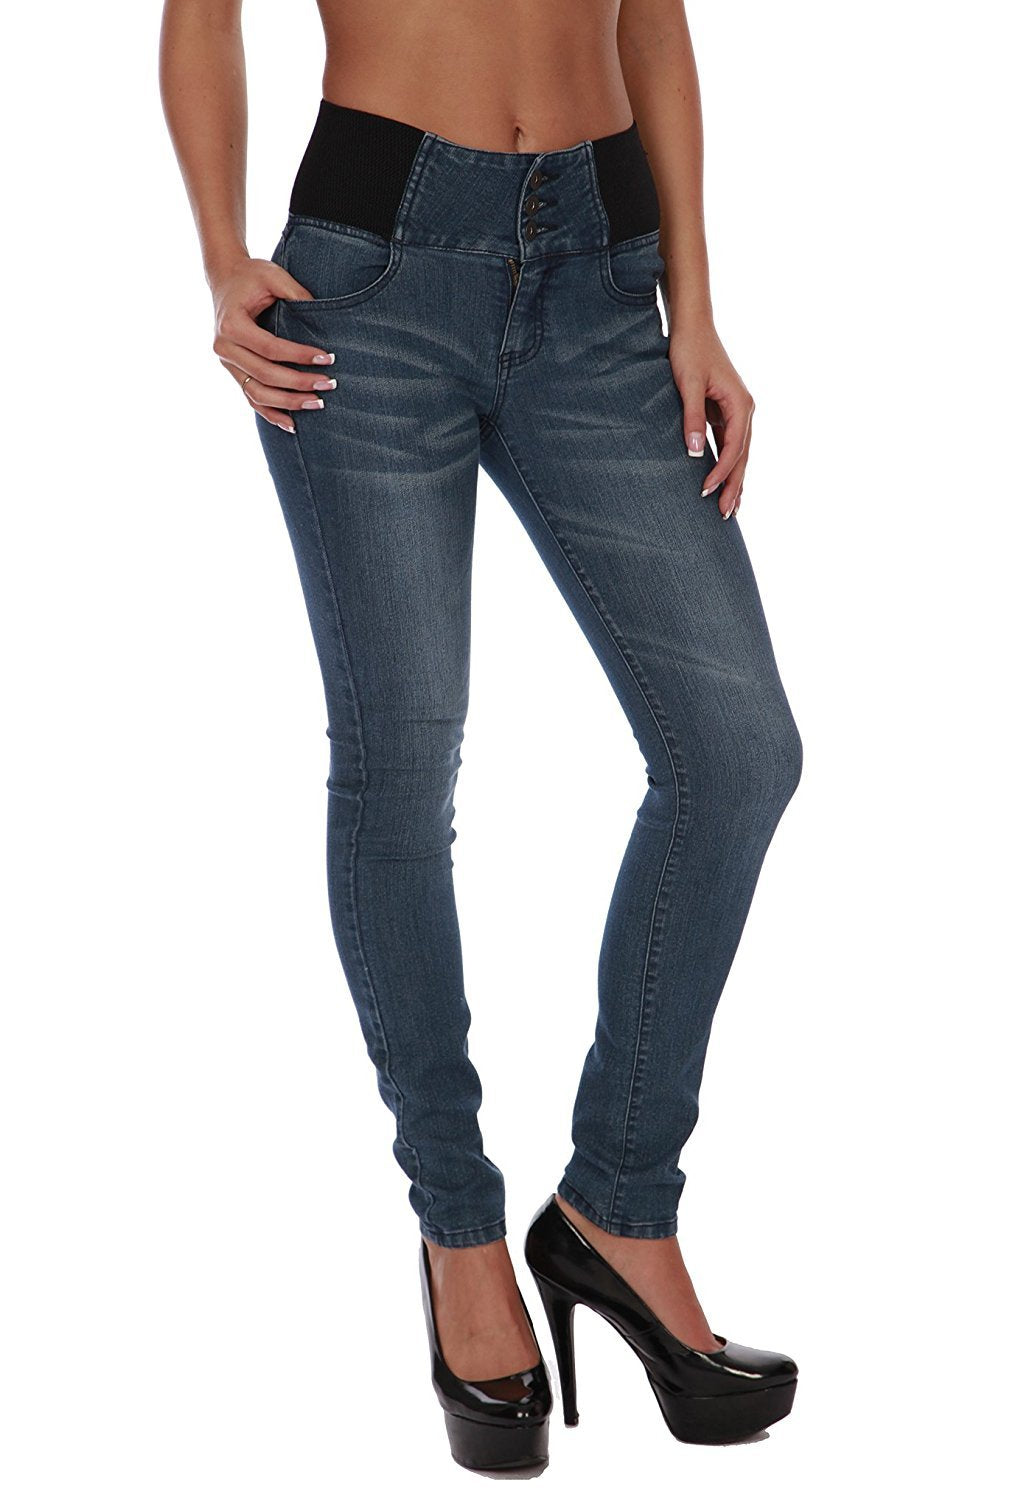 Hollywood Star Fashion Women's High Elastic Design Waist Button Skinny Jeans